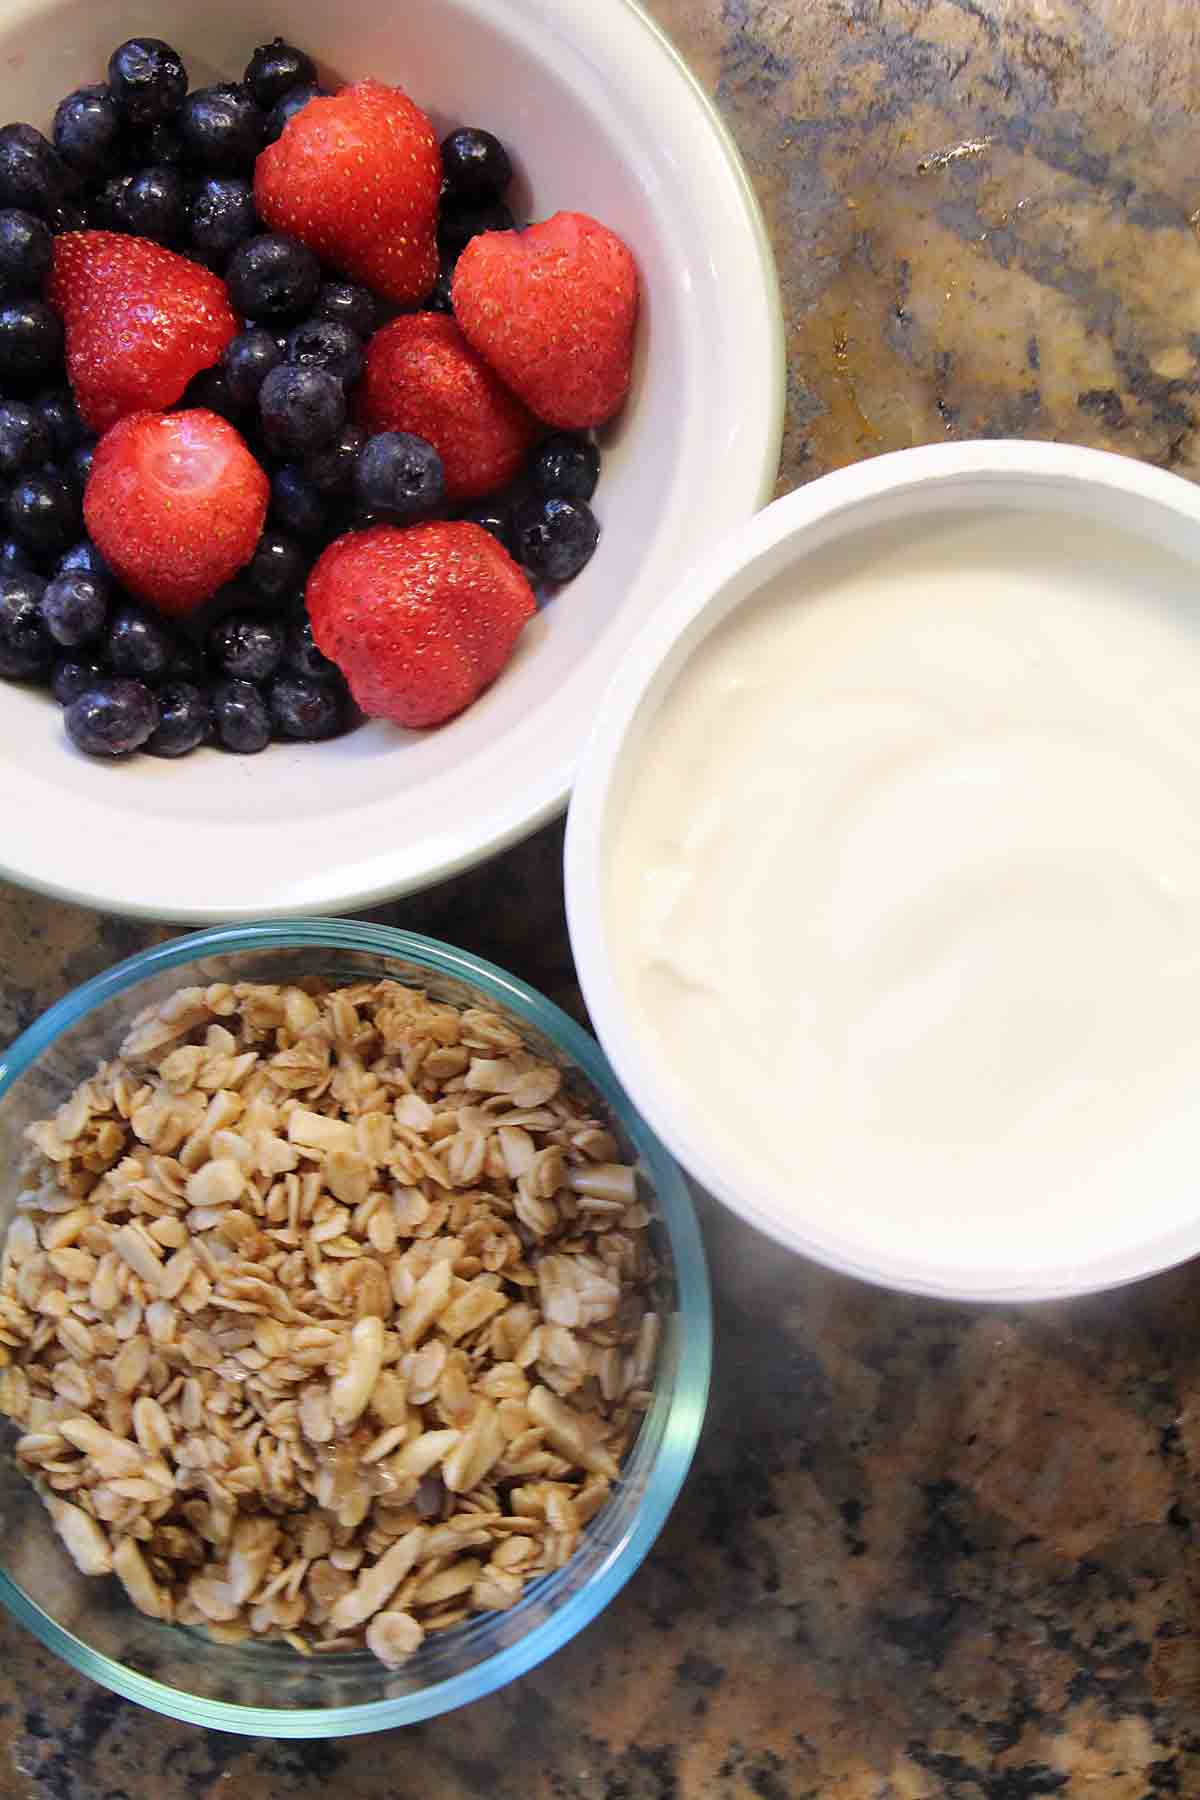 Homemade Maple Vanilla Granola take less than 10 minutes working time for a cost-saving, all natural treat. Great for breakfast or snacking.